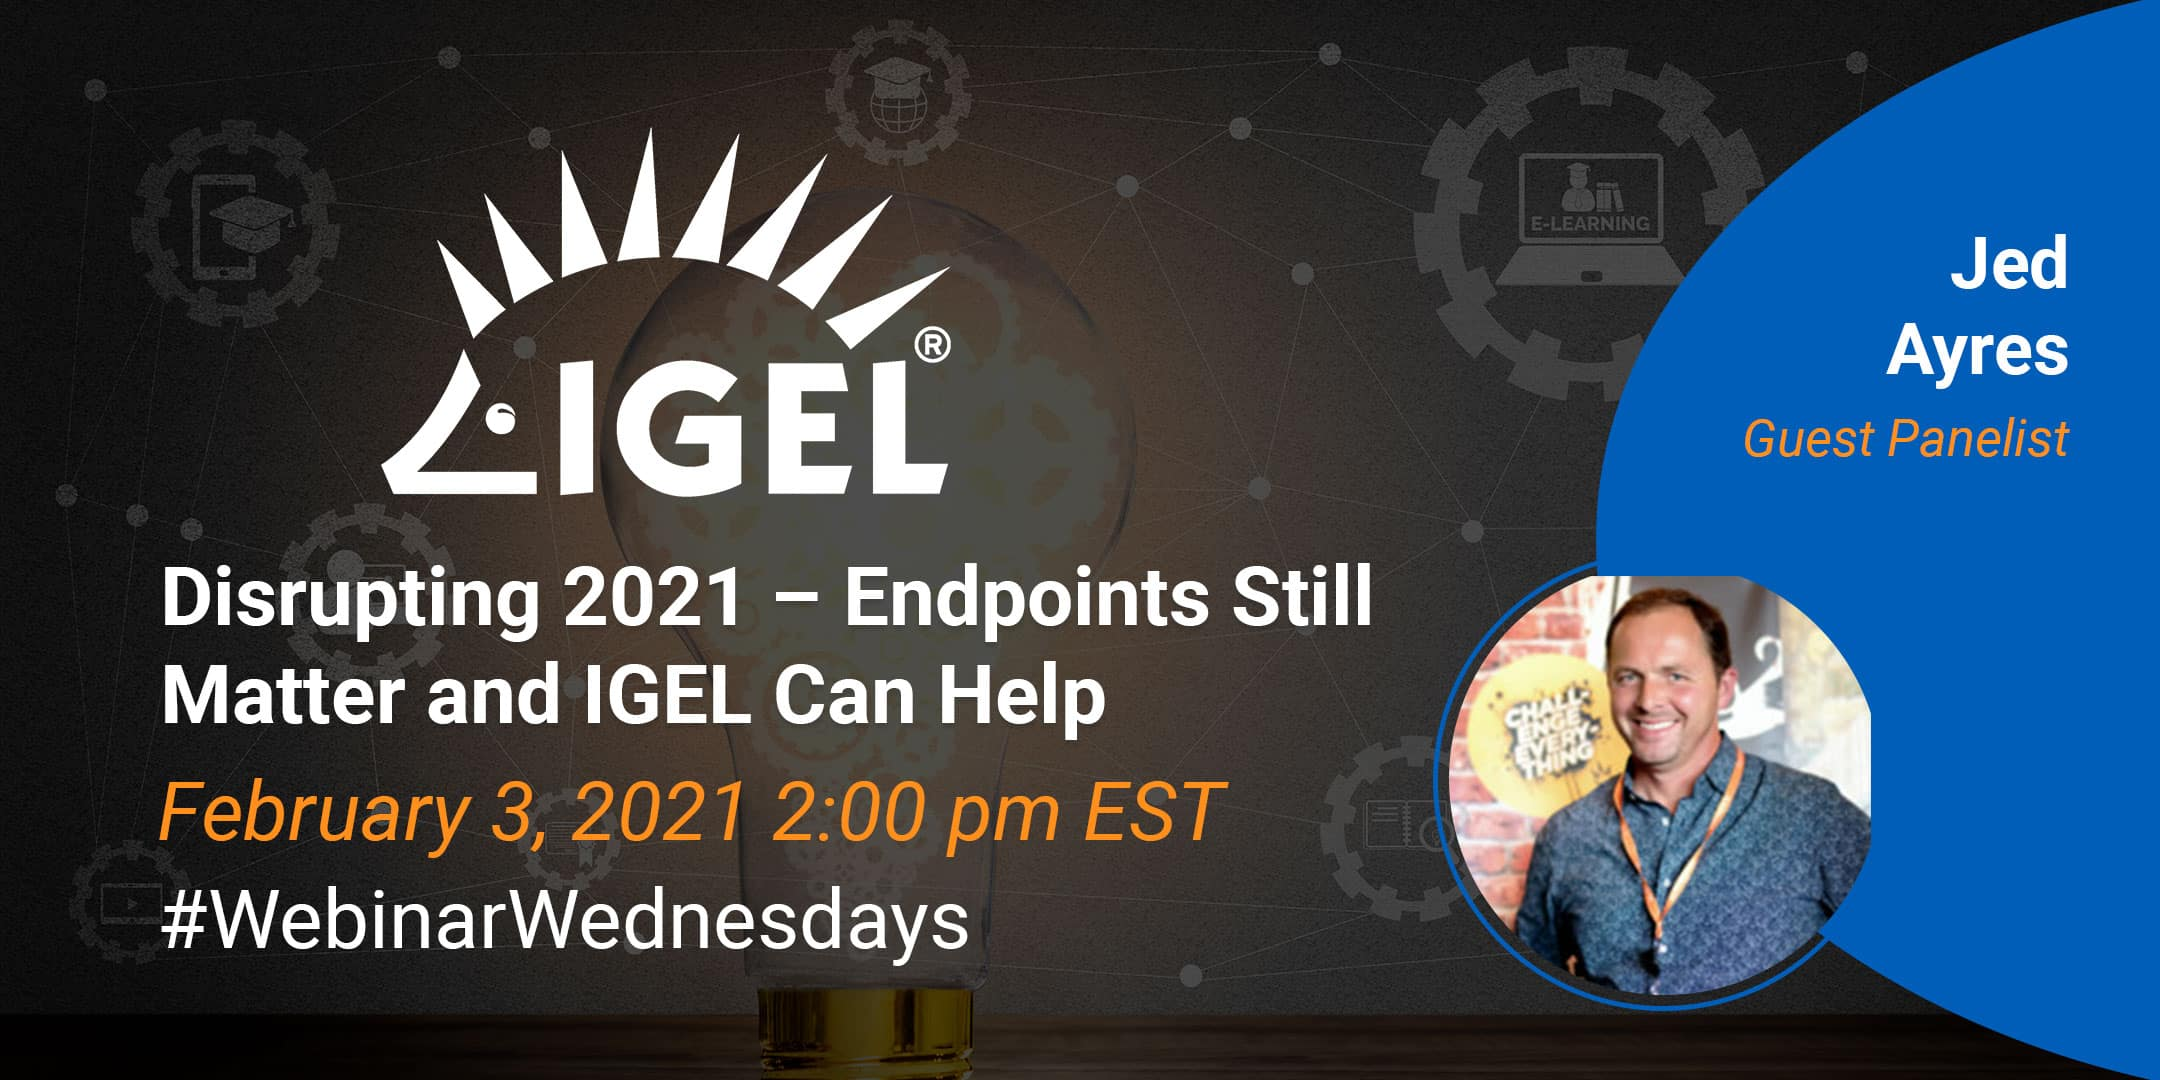 Disrupting 2021 – Endpoints Still Matter and IGEL Can Help with Jed Ayres